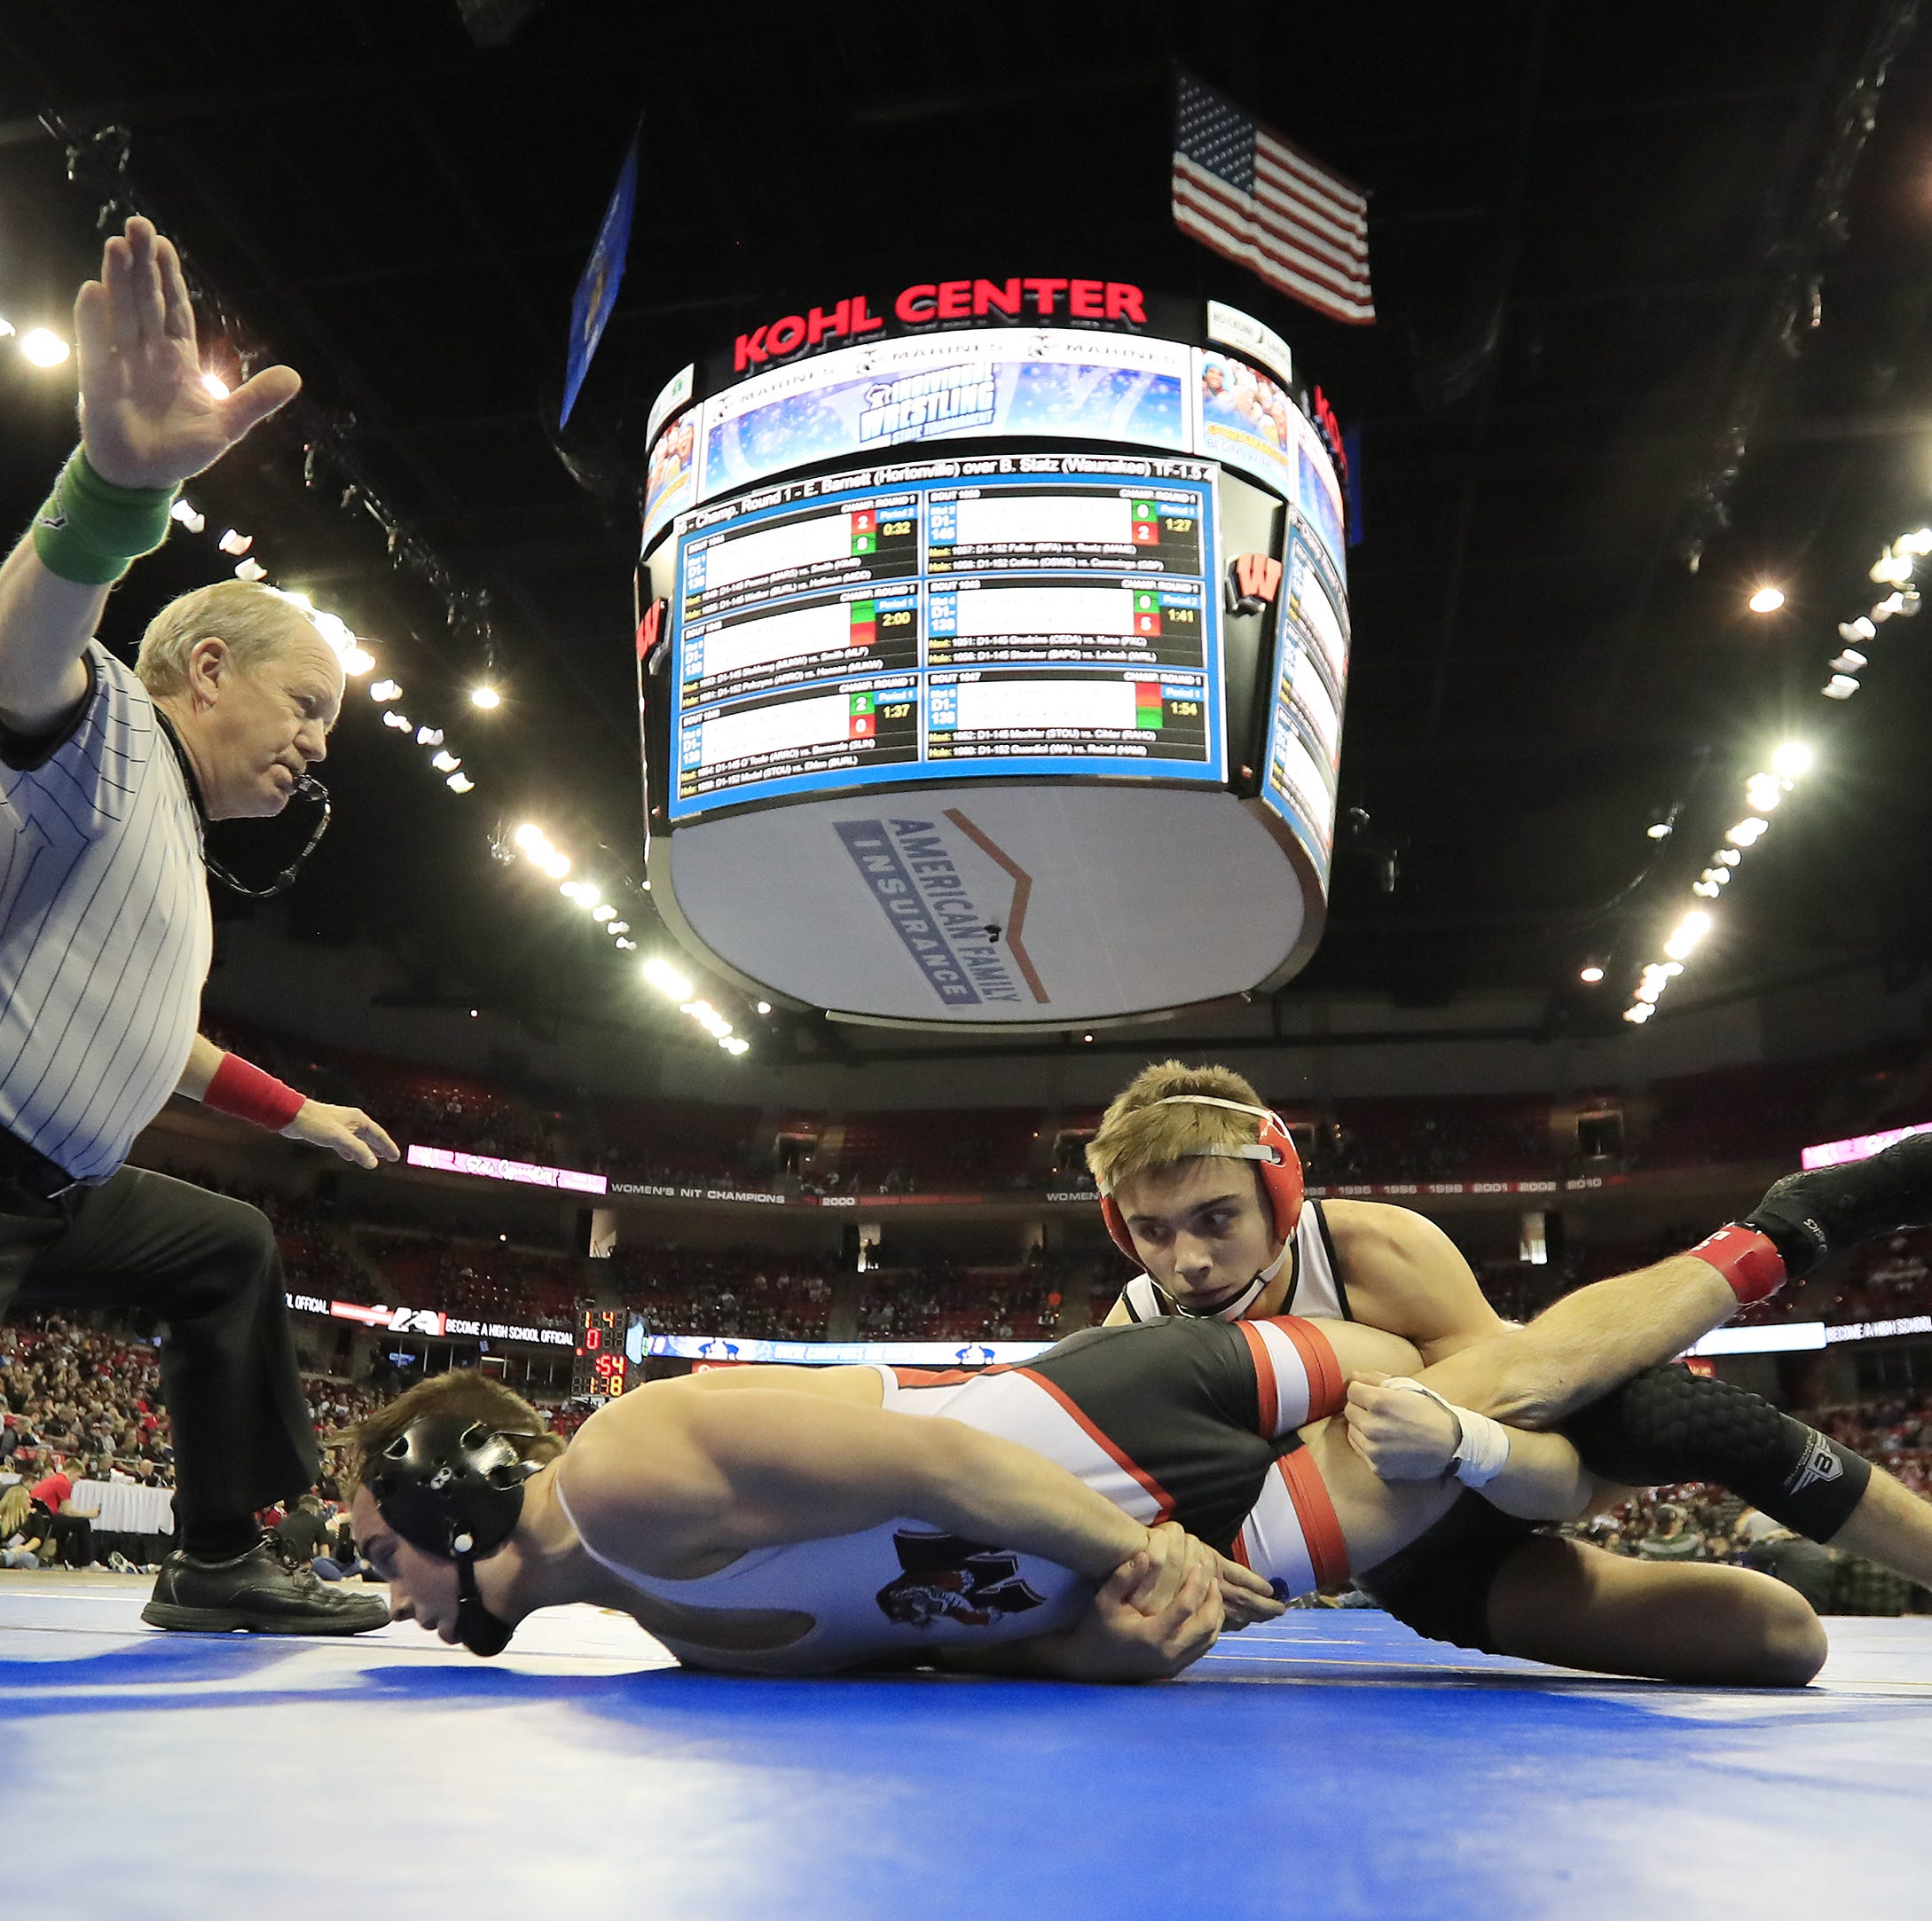 WIAA state wrestling: Day 1 results from Madison